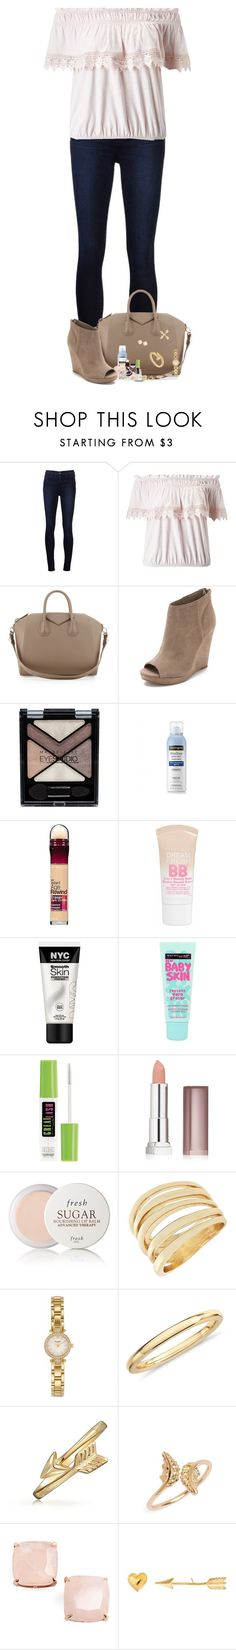 """""""When Your Eyes Are Red And Emptiness Is All You Know"""" by nessiecullen2286 ❤ liked on Polyvore featuring J Brand, Miss Selfridge, Givenchy, Dolce Vita, Maybelline, Neutrogena, Fresh, BCBGeneration, Kate Spade and Blue Nile"""